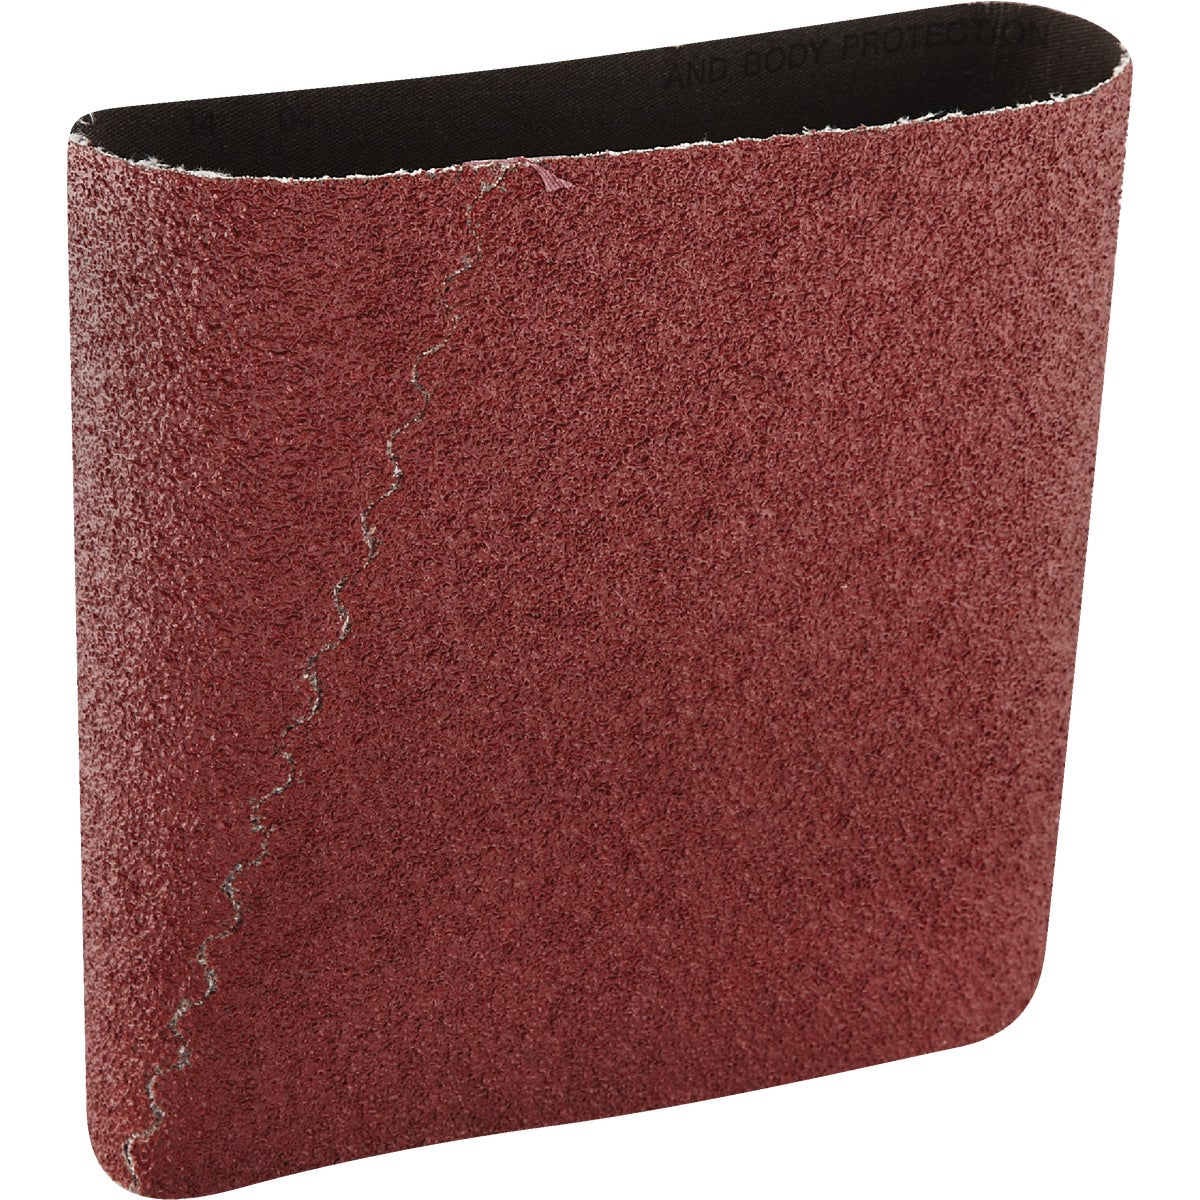 80G FLOOR SANDING BELT - 018-881980 by Virginia Abrasives